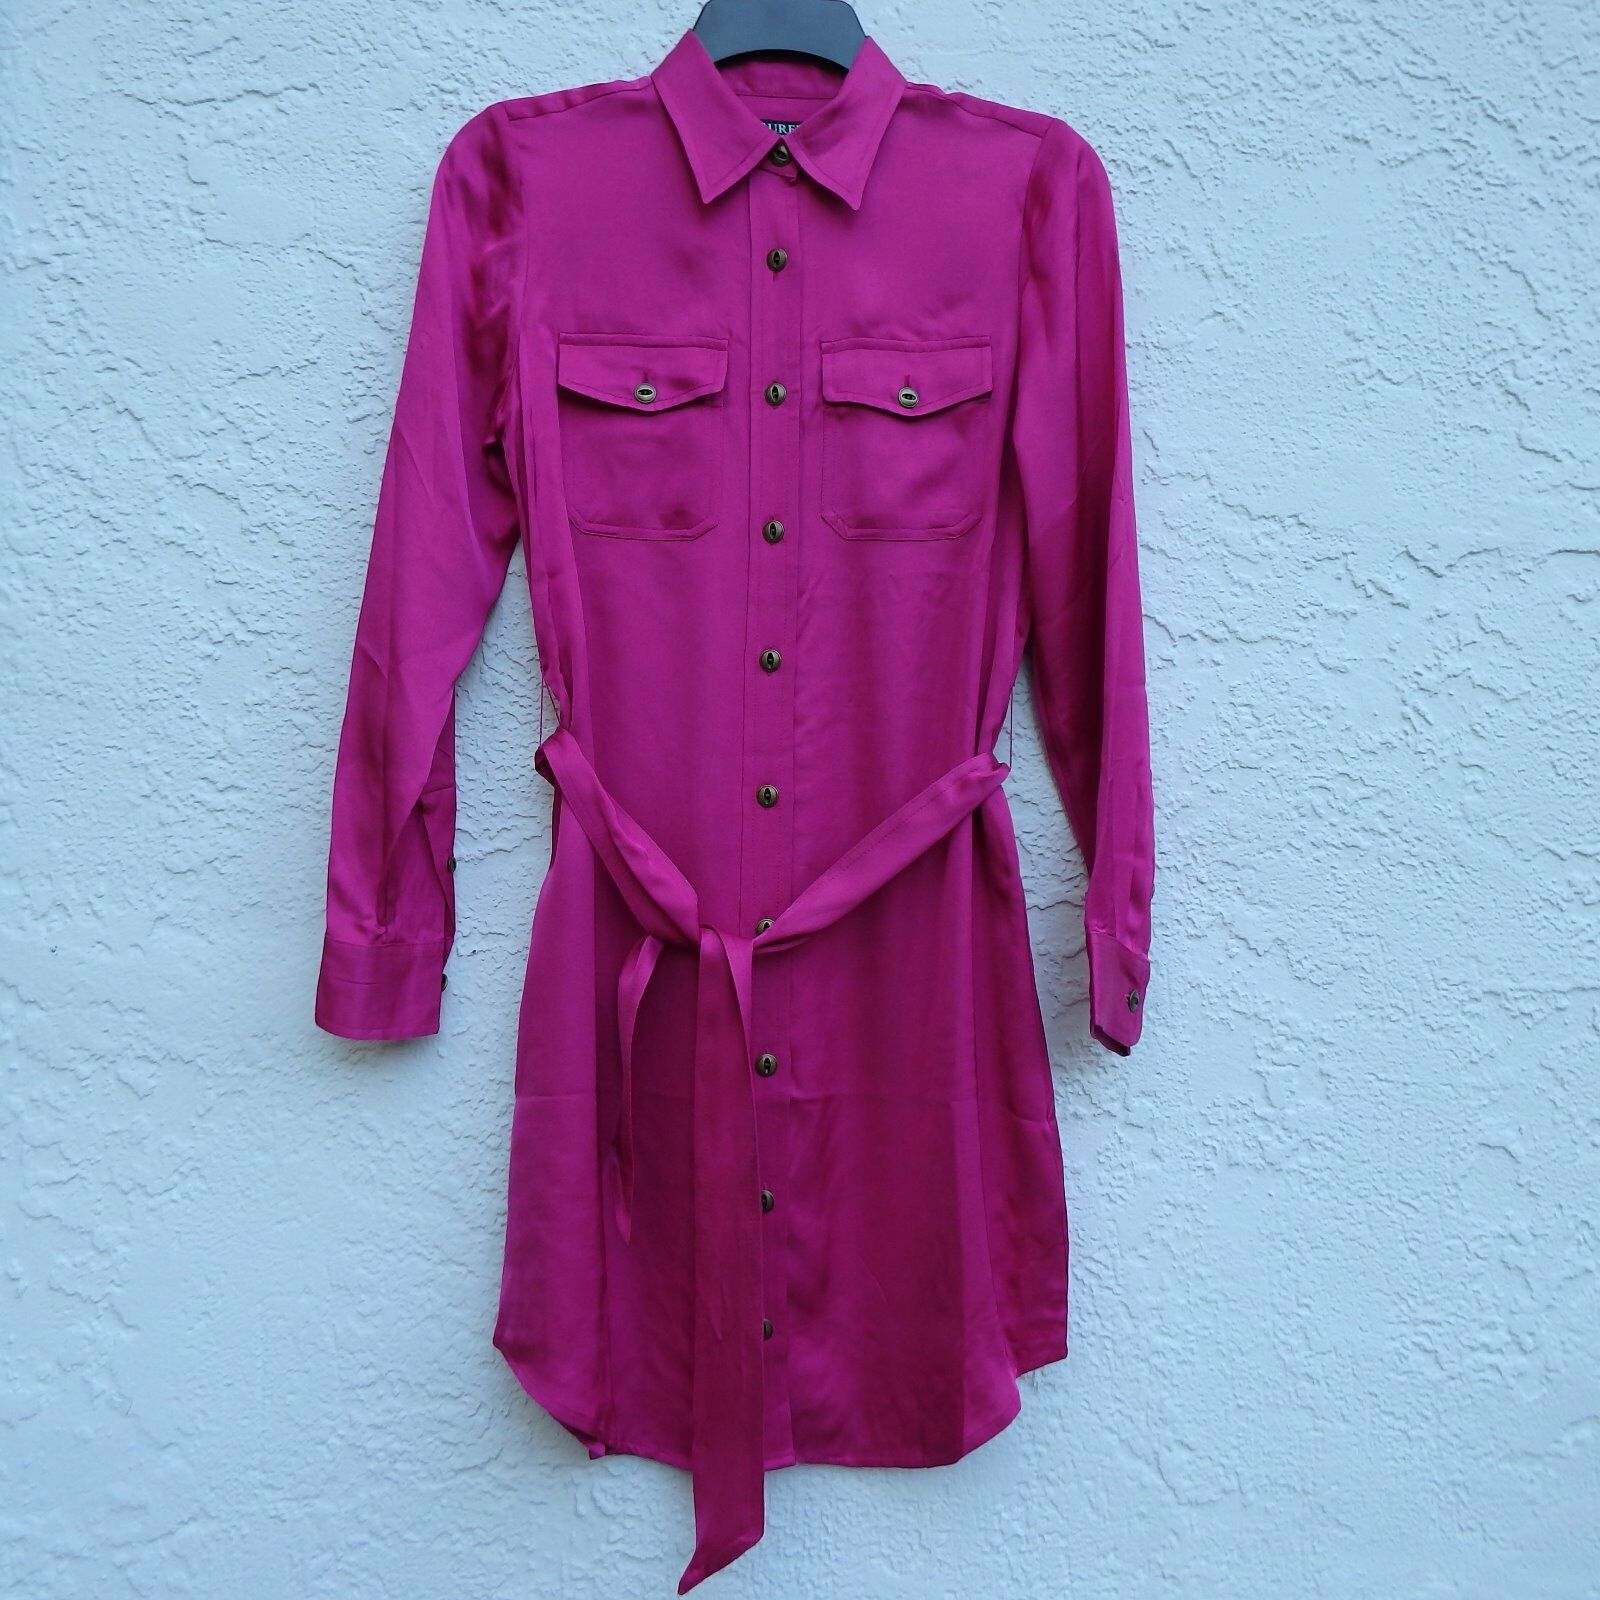 ef2baa0d NWT Lauren Ralph Lauren Satin Long Sleeve Knee Length Shirt Dress Pink SZ 6P